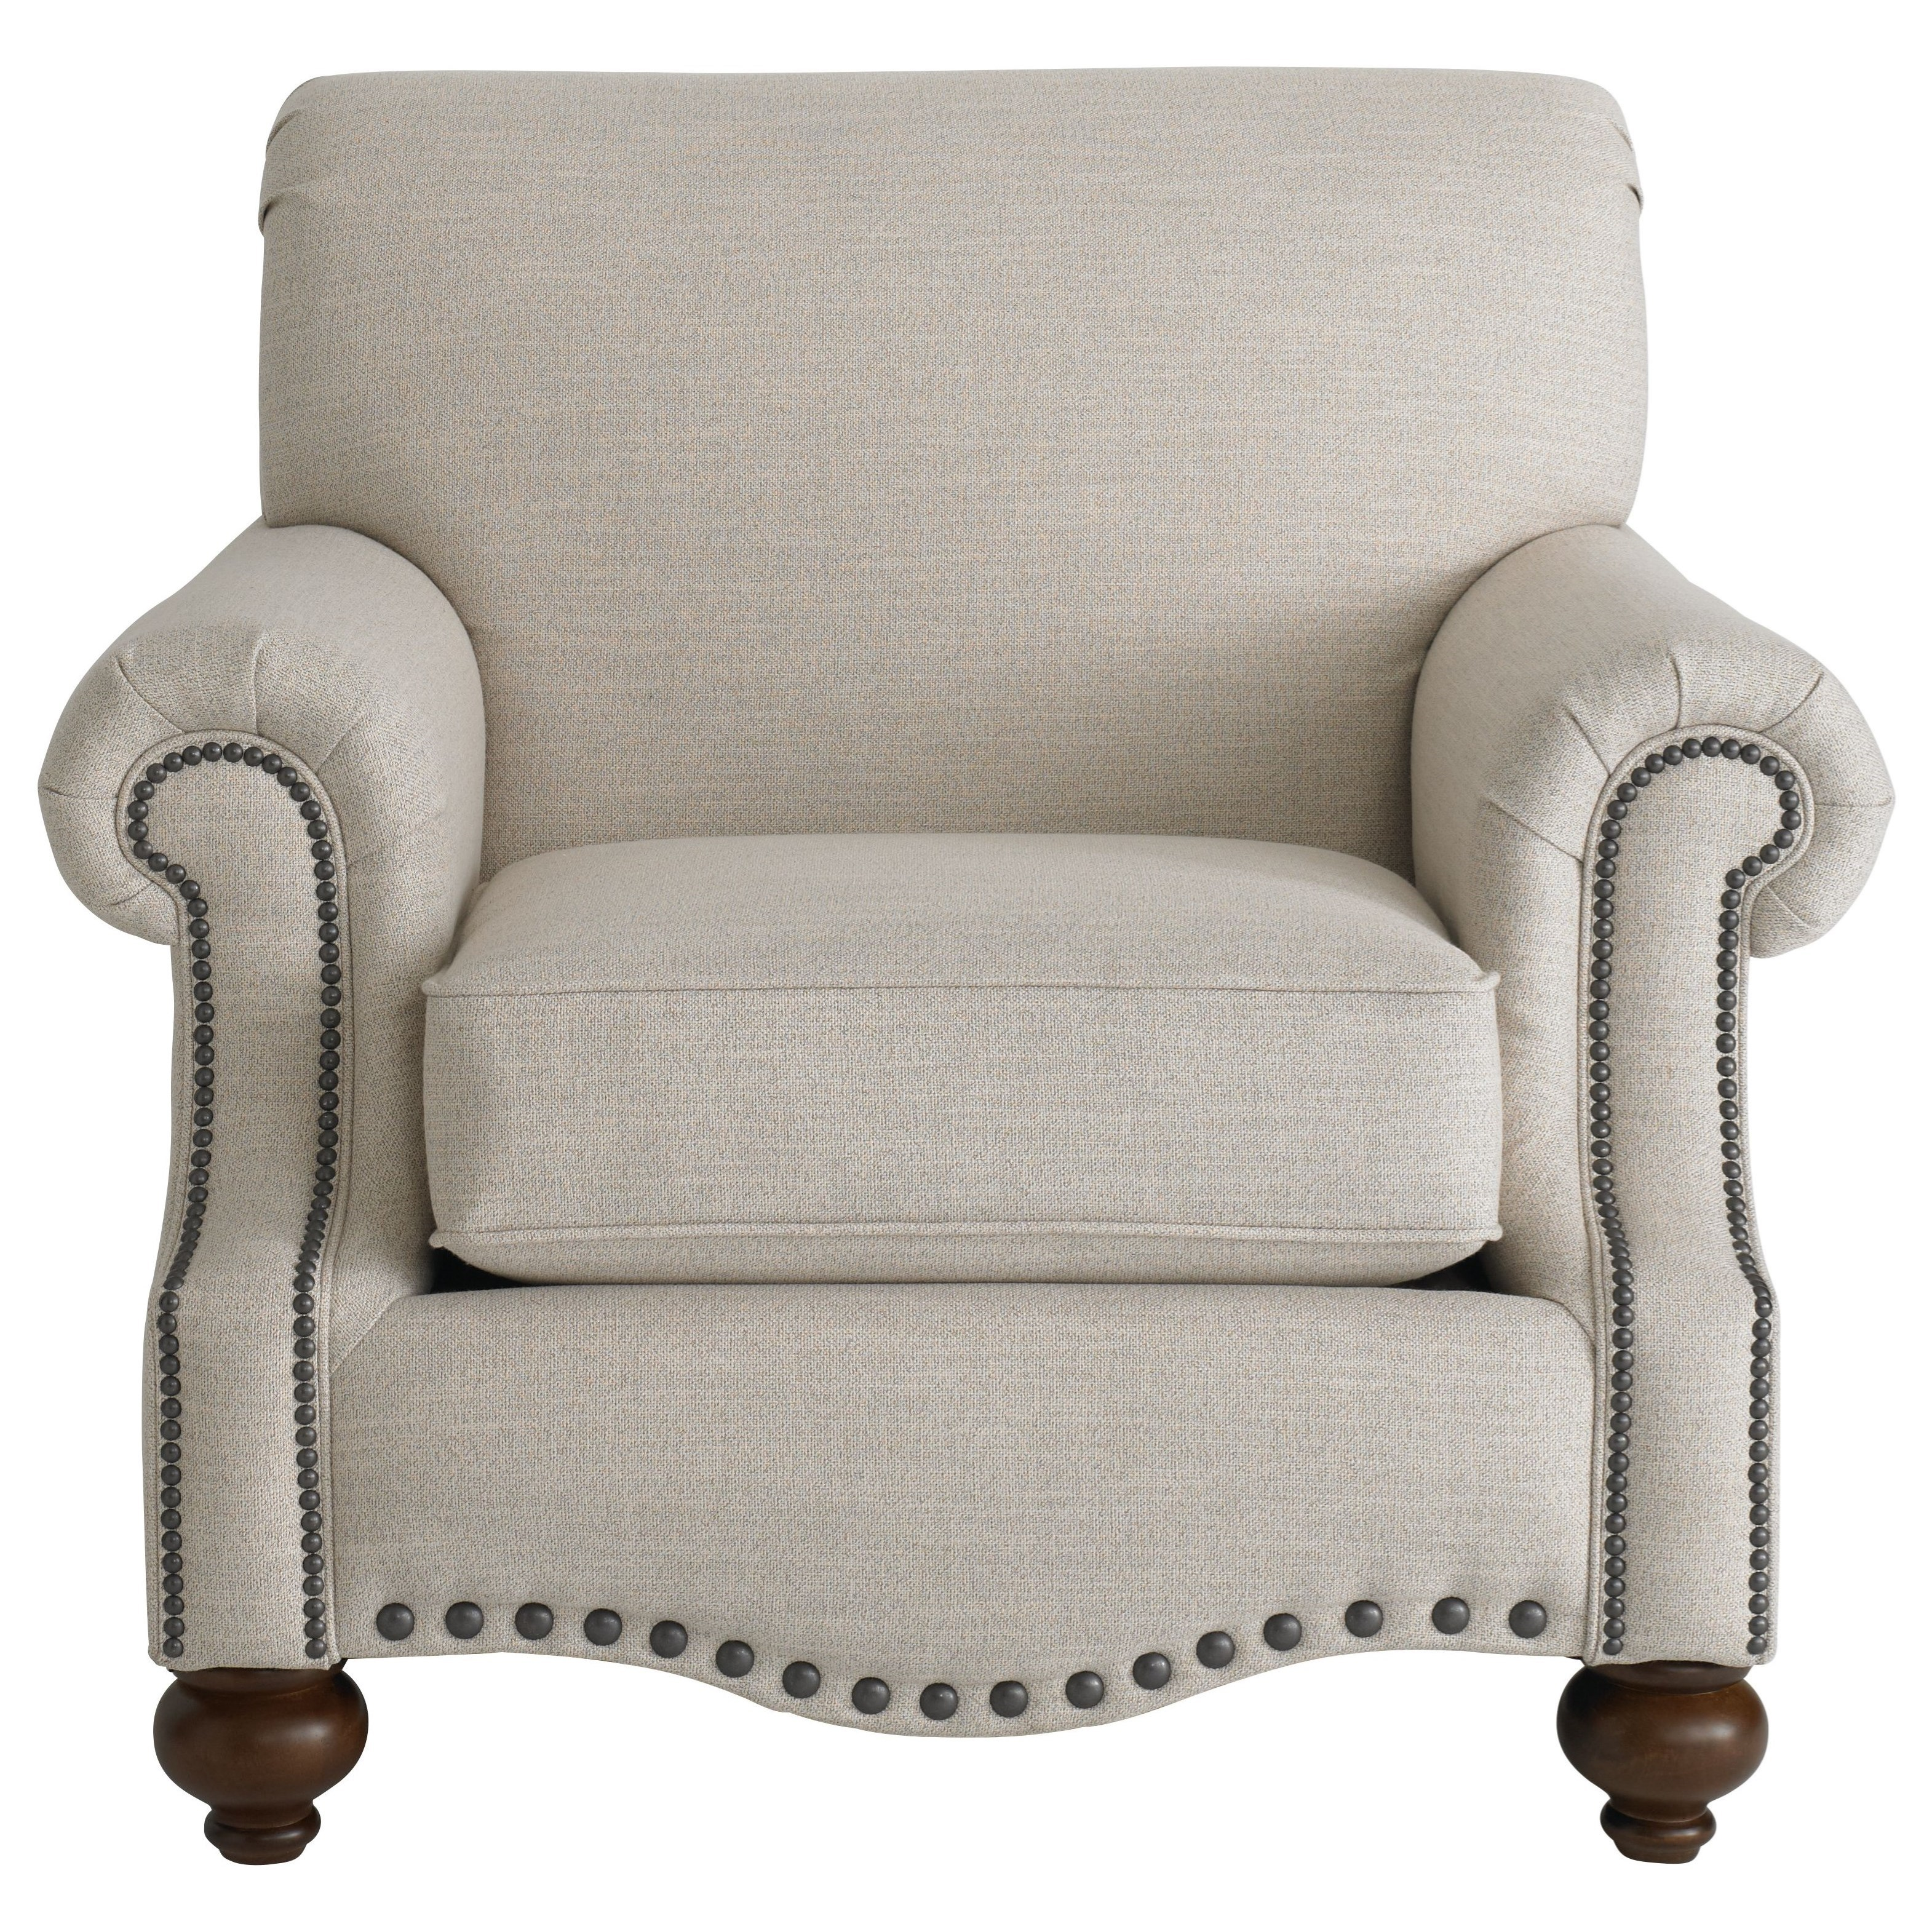 Hunt Club Chair by Bassett at Bassett of Cool Springs